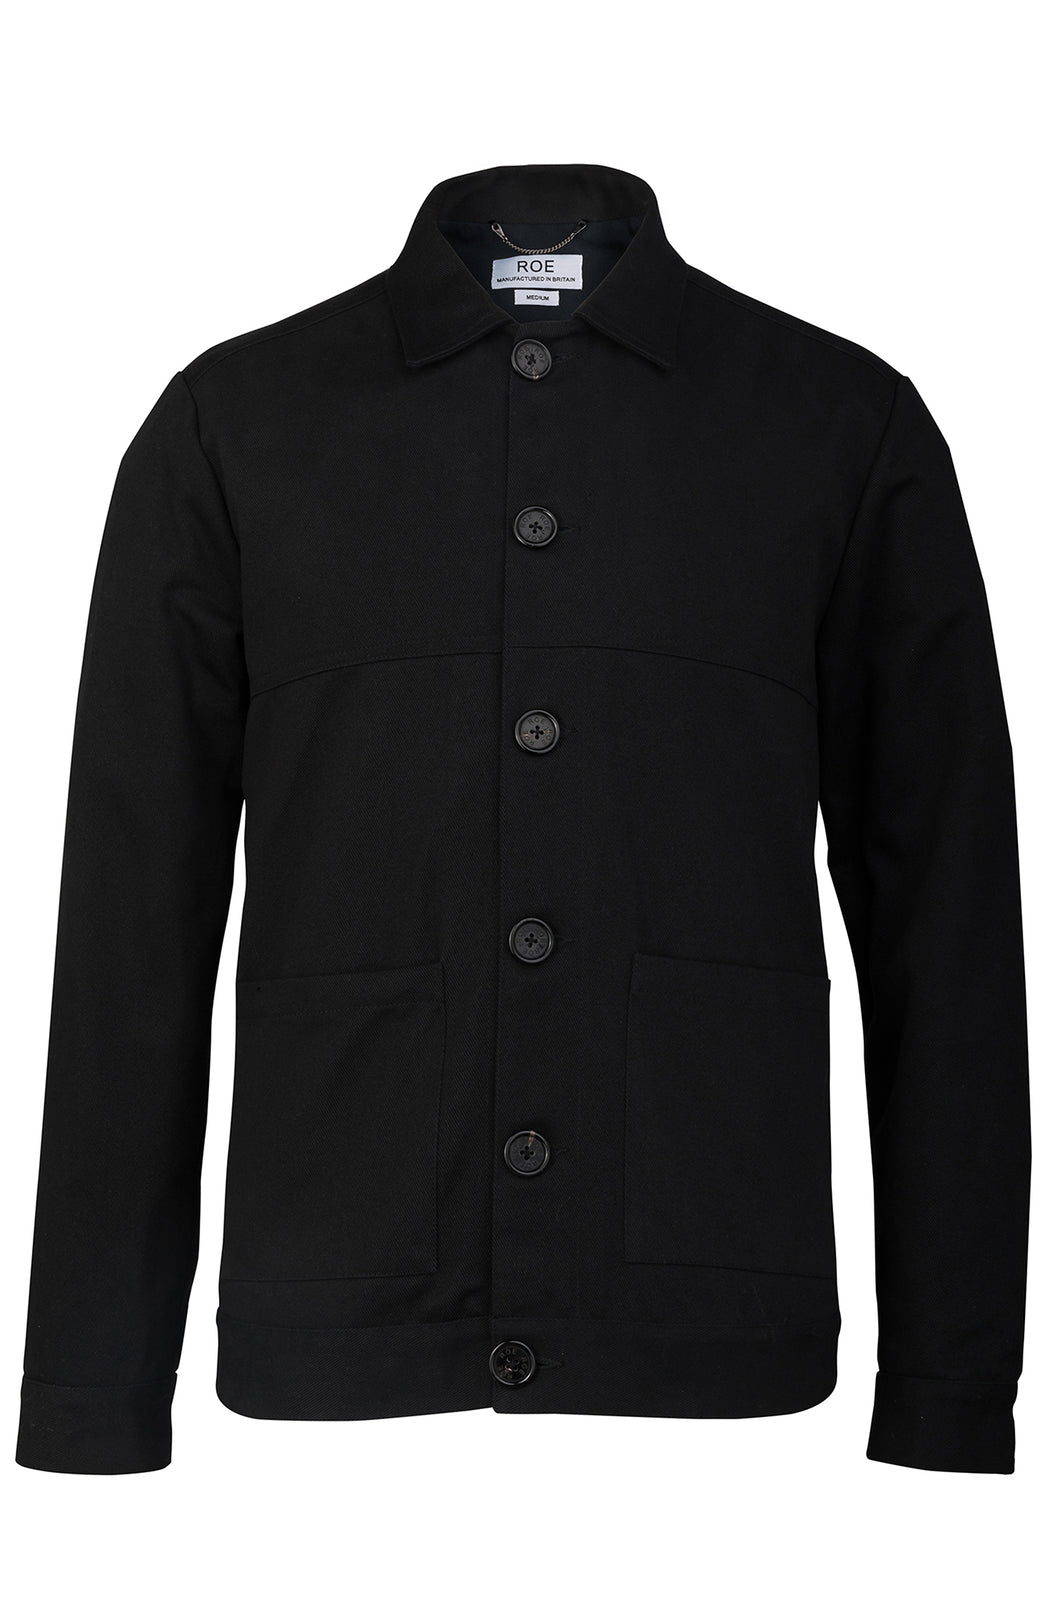 WORK JACKET - BLACK, Jacket - ROE